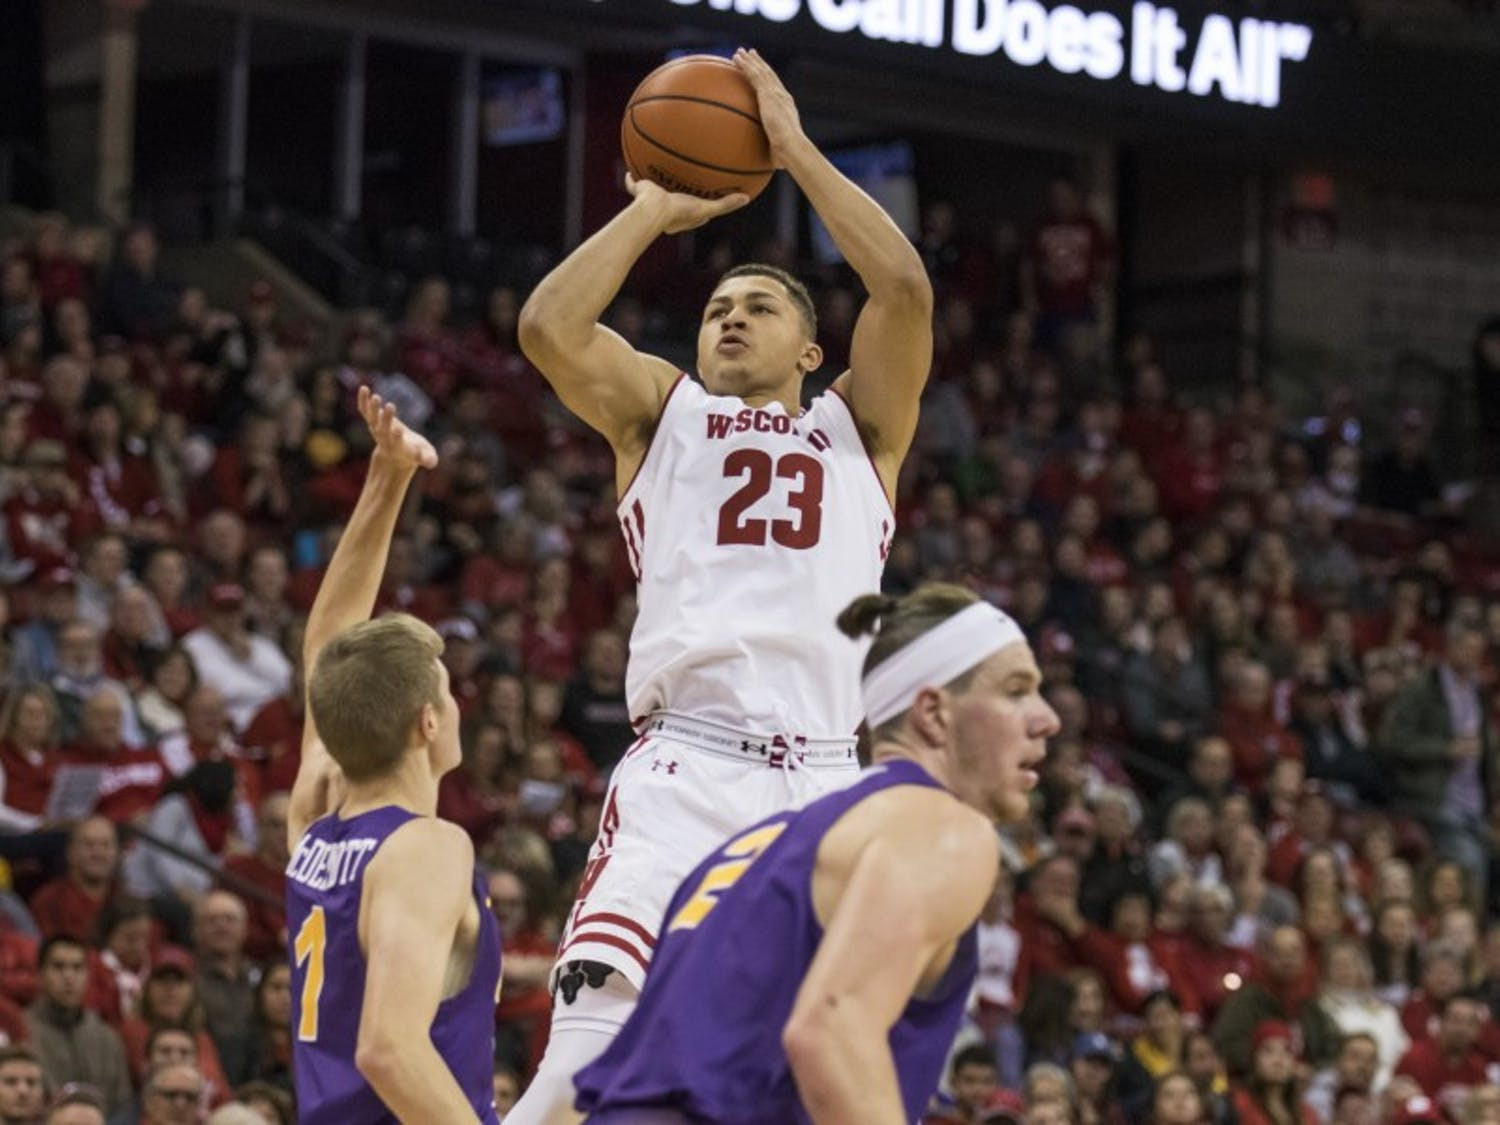 Freshman Kobe King has averaged 29 minutes of action in Wisconsin's last two games, and his presence has provided more space for Ethan Happ and the rest of the offense.